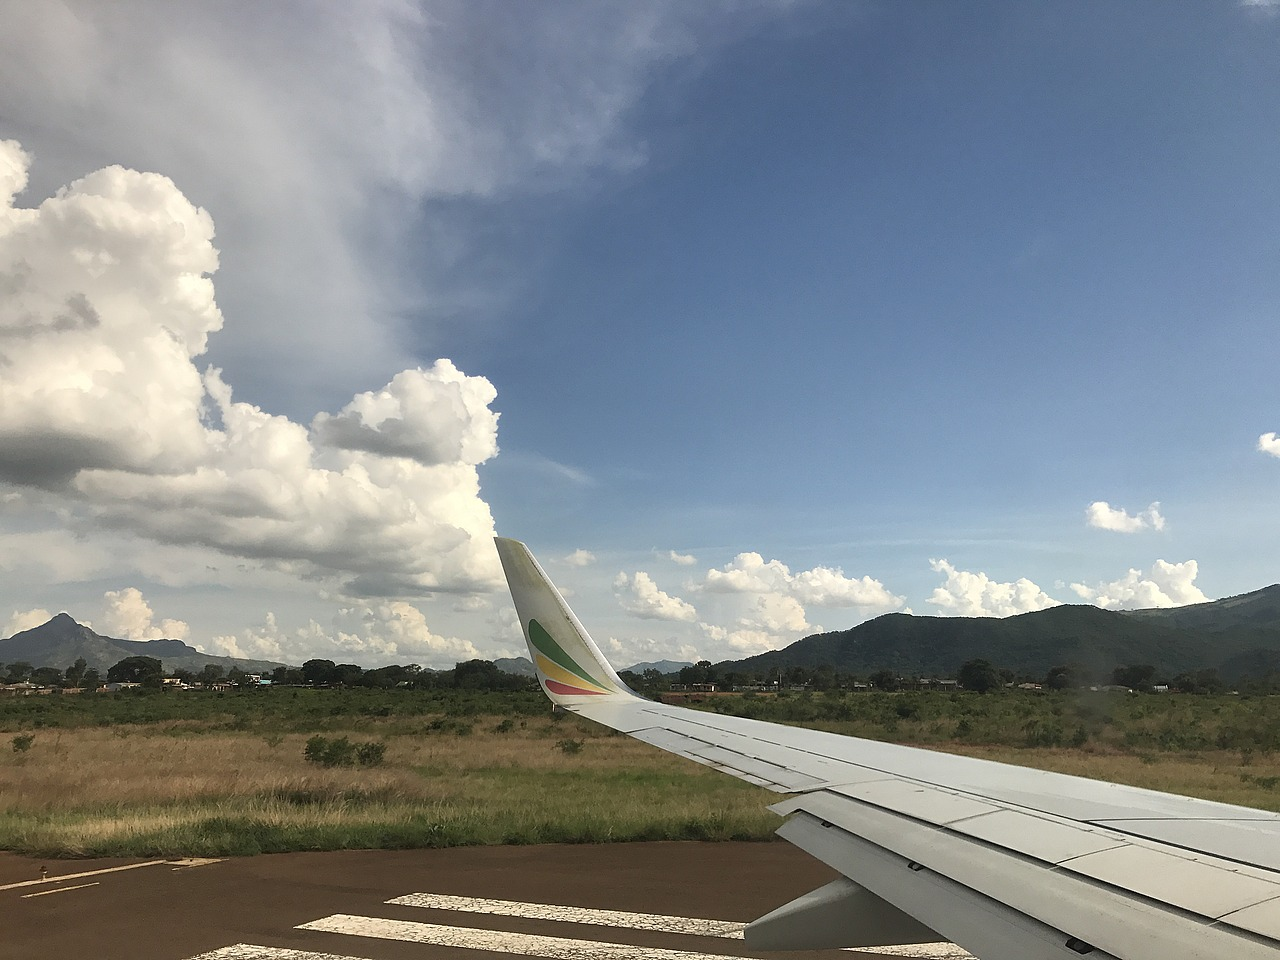 Our first glimpse of Malawi